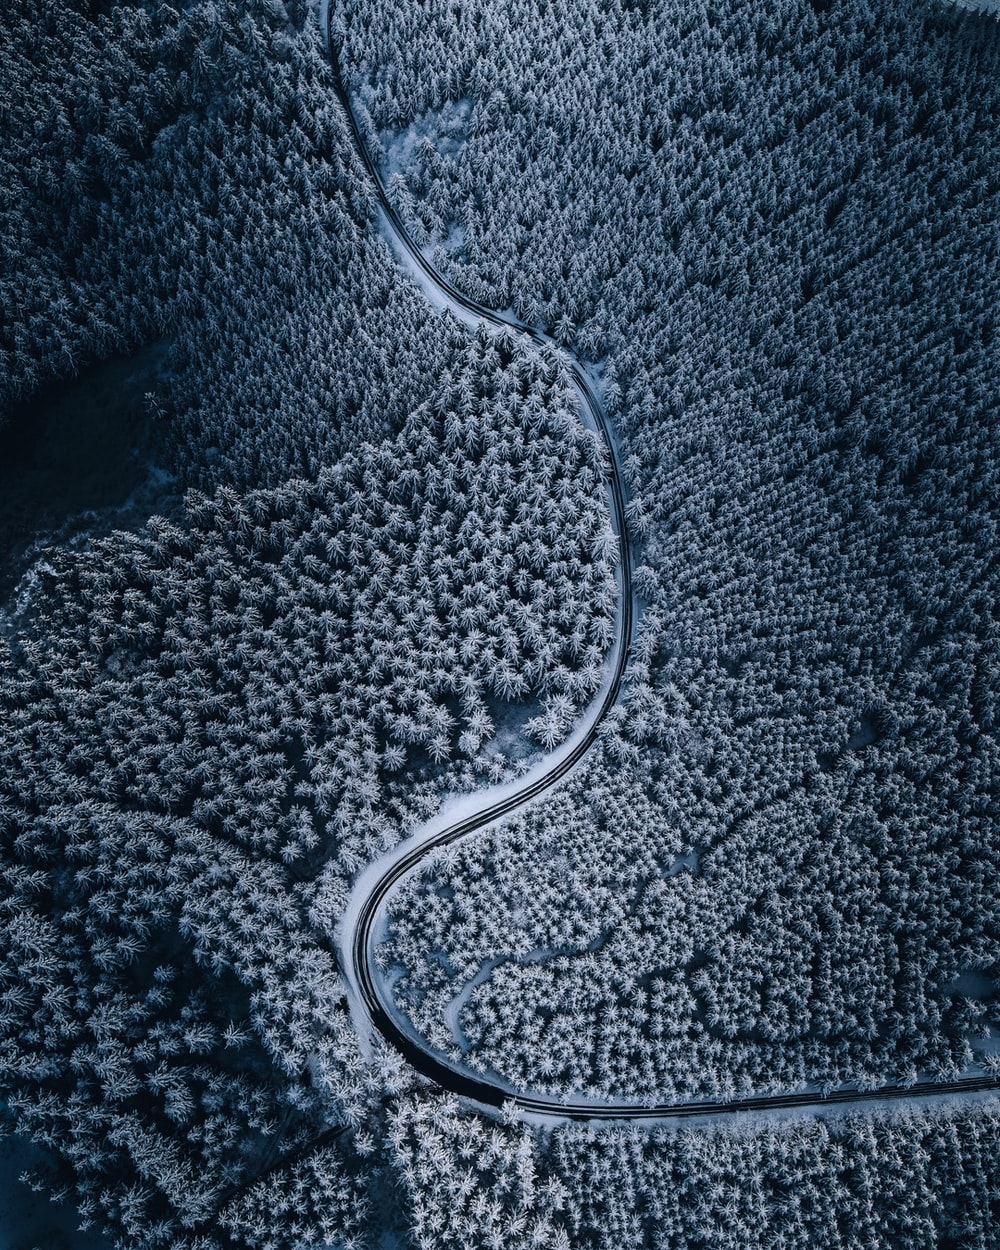 aerial view of road in the middle of snow covered ground